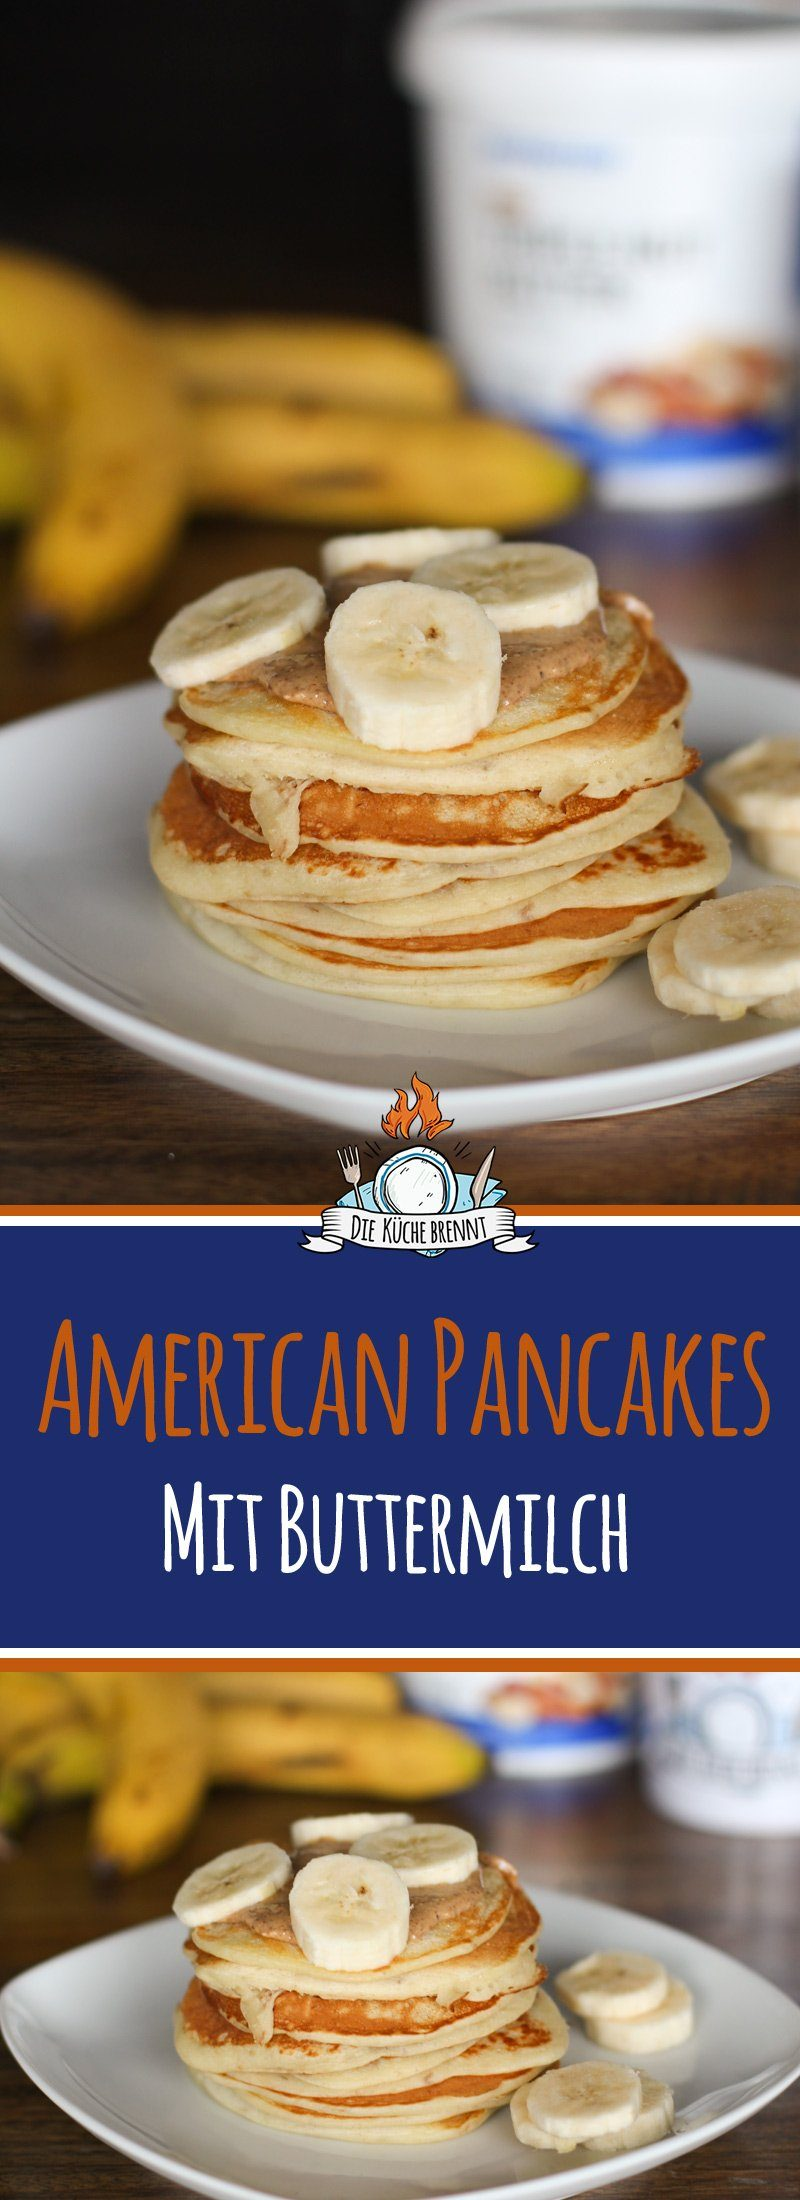 american pancakes rezept mit buttermilch. Black Bedroom Furniture Sets. Home Design Ideas